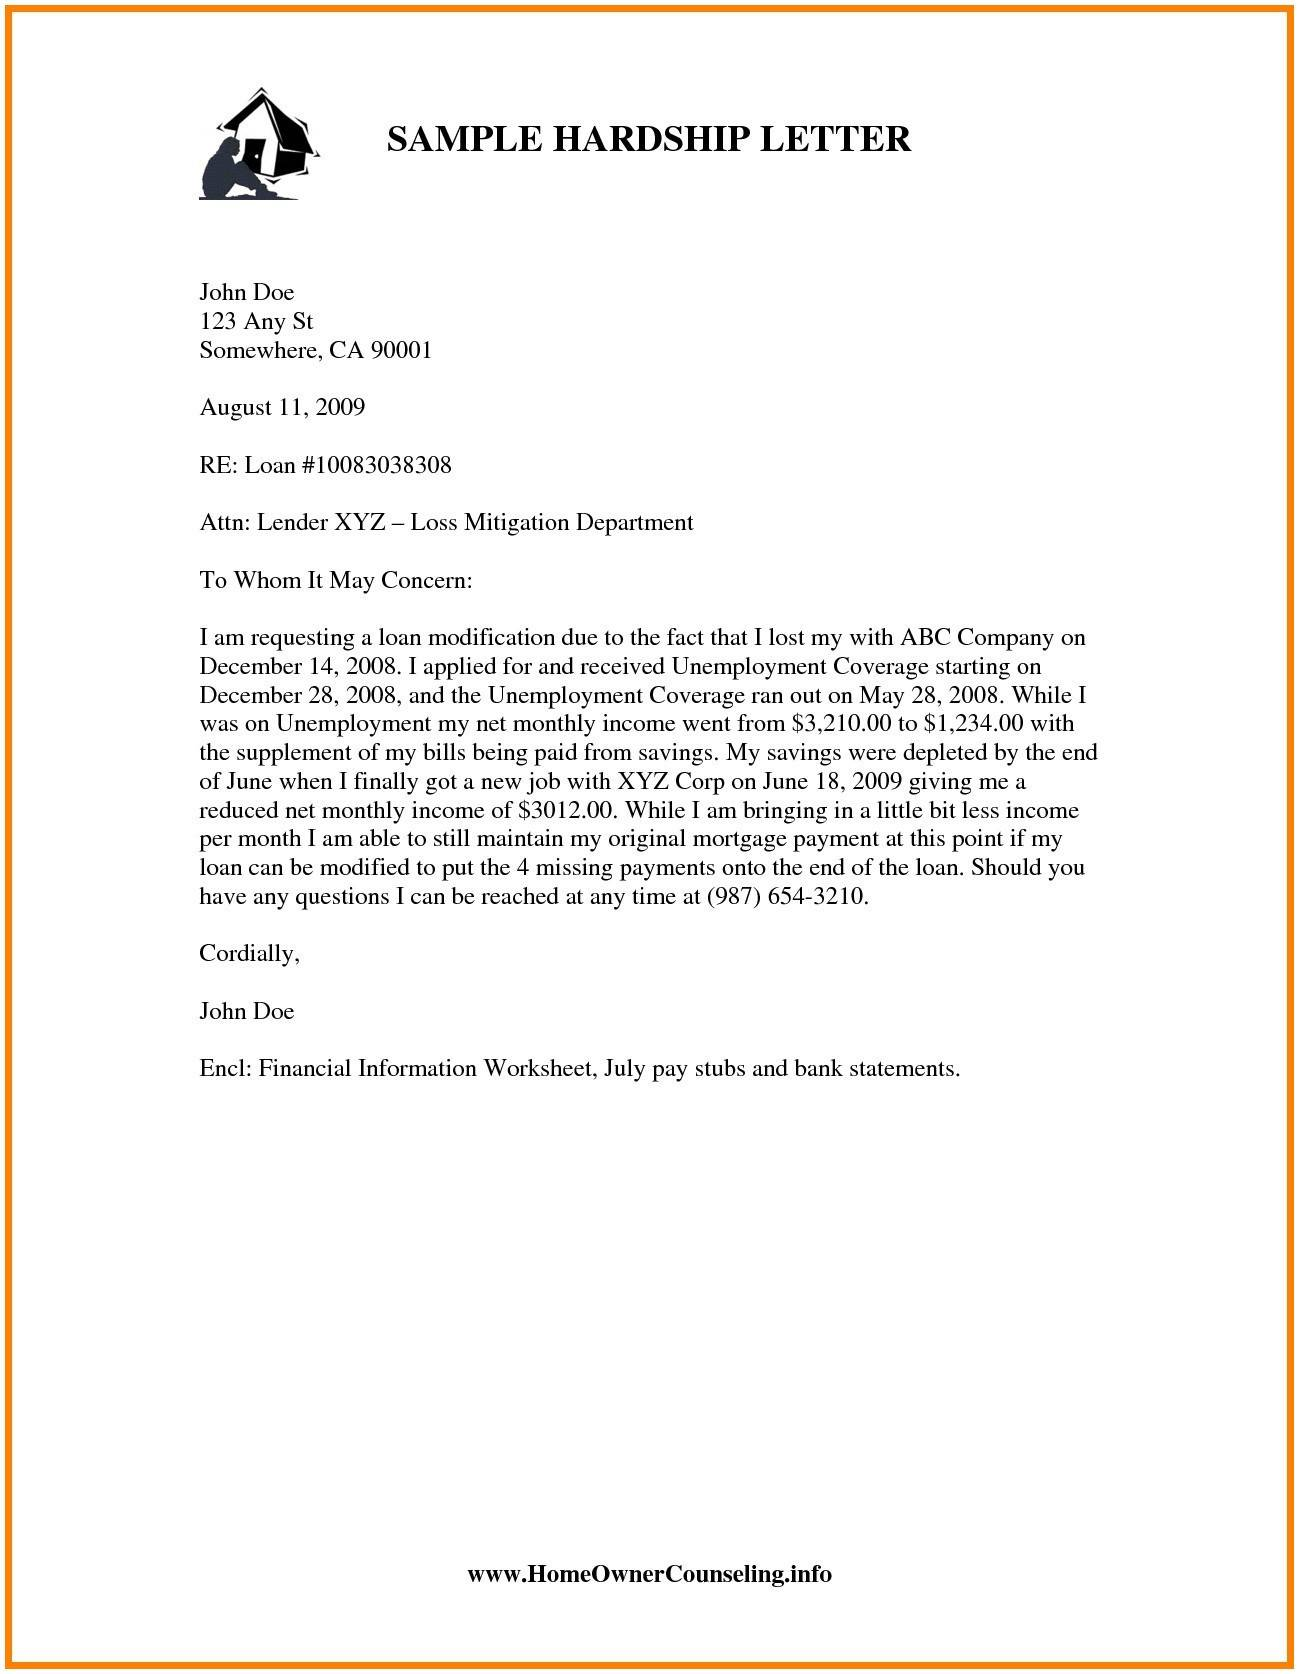 Loan Modification Hardship Letter Template